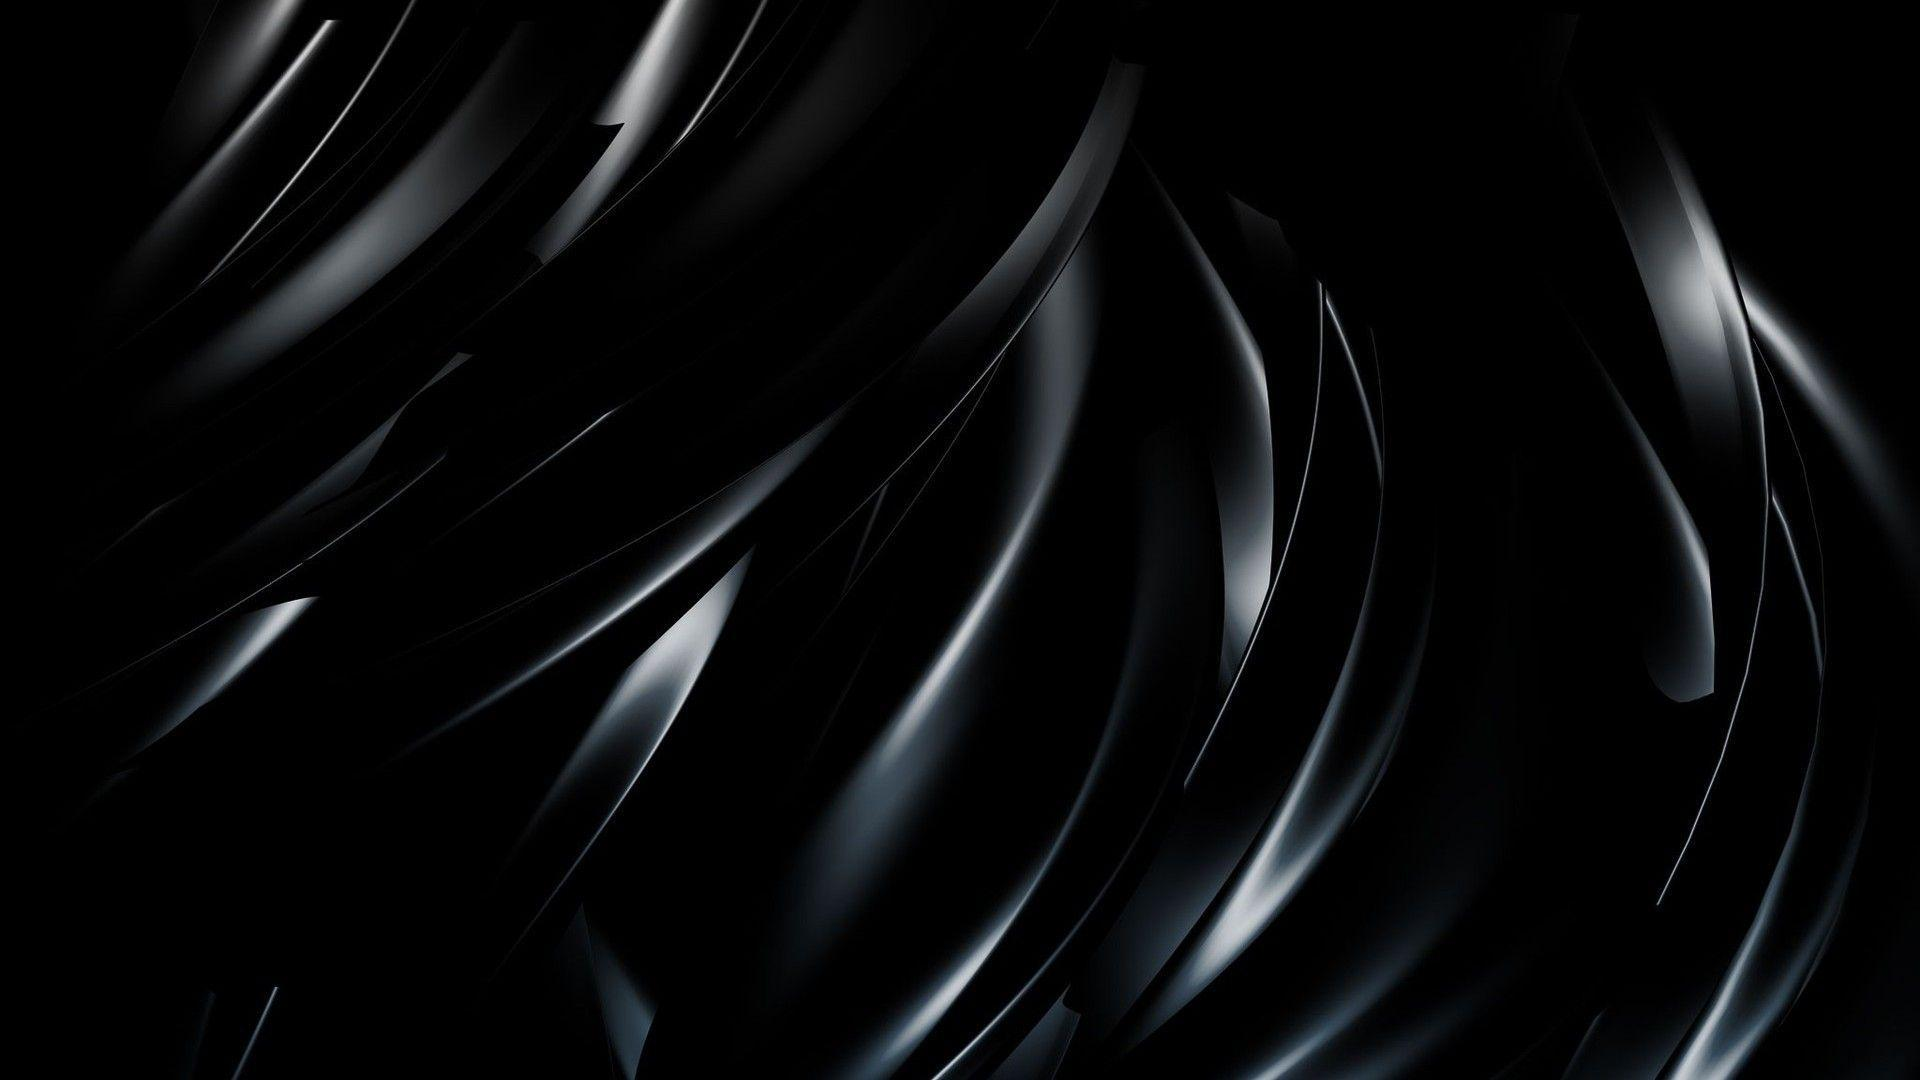 dark backgrounds 1920x1080 aero - photo #29